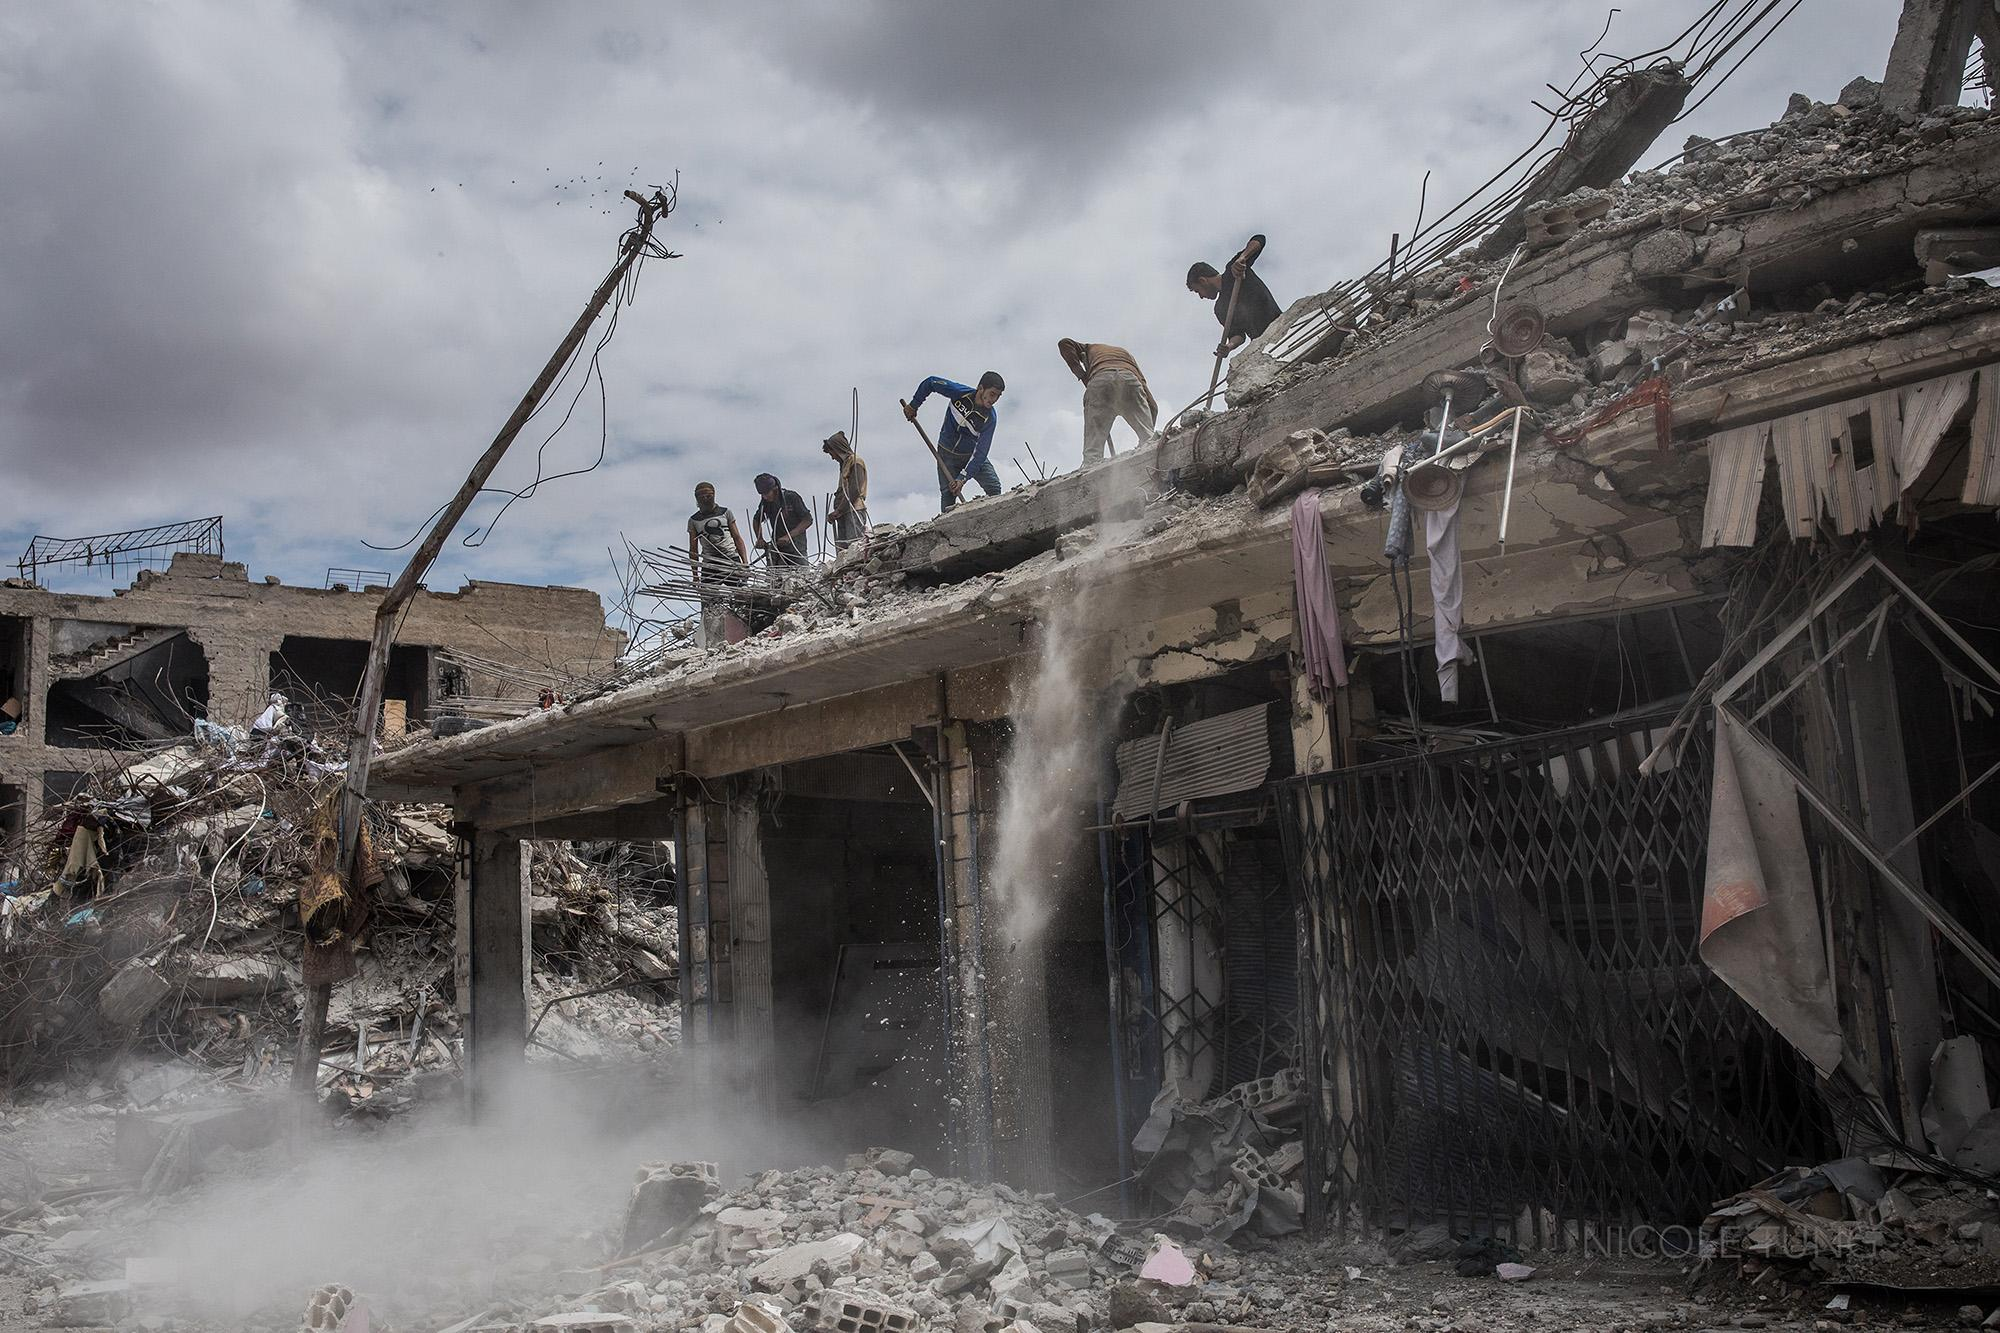 Construction workers remove rubble from a destroyed building in Raqqa, Syria. May 2018. An estimated 80 percent of Raqqa's infrastructure was destroyed or damaged during the offensive to retake the city from ISIS, with thousands of lives lost in aitstrikes by the coalition, addition to those civilians who were executed by ISIS during their reign over the city from 2014 until their ouster in 2017.